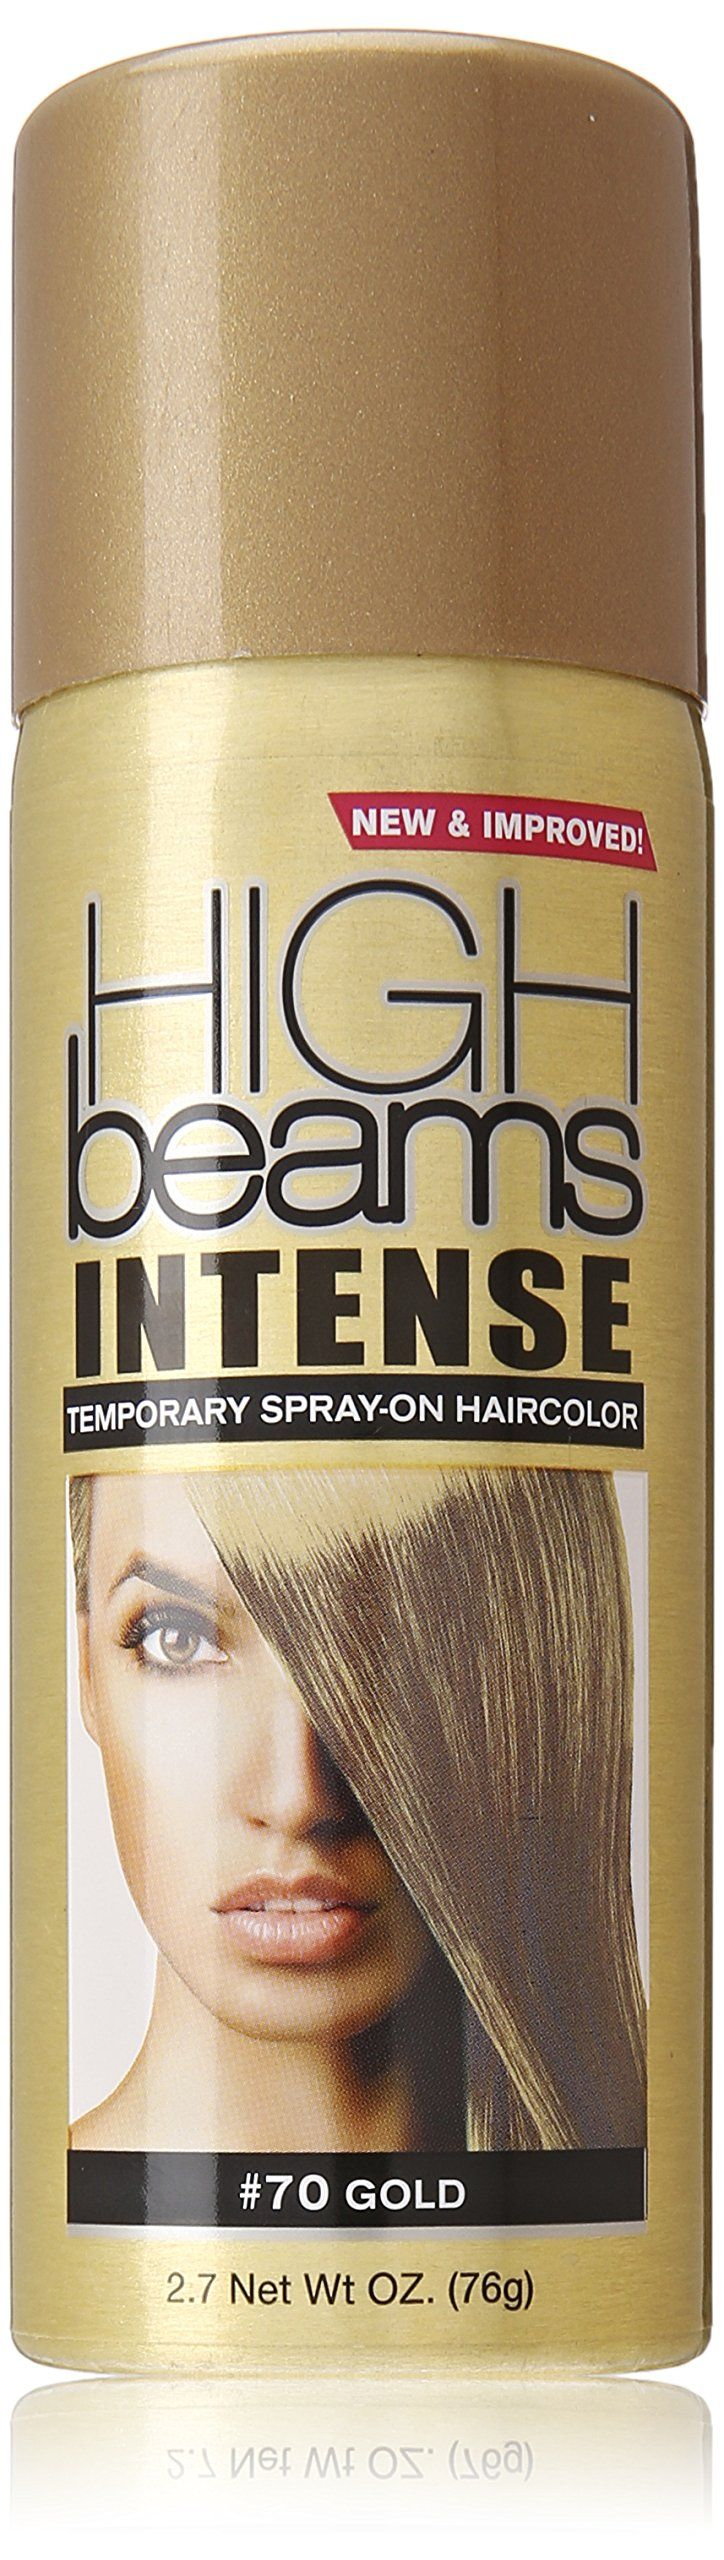 high beams Intense Temporary Spray on Hair Color, Gold, 2.7 Ounce. Add pizzazz to any hair design. It's the perfect tool for adding subtle color highlights or for making a bold statement. High beams intense washes away with just one shampooing, with no risk of damaging your hair color; Get ready to turn on the creativity with high beams intense temporary spray-on hair color.